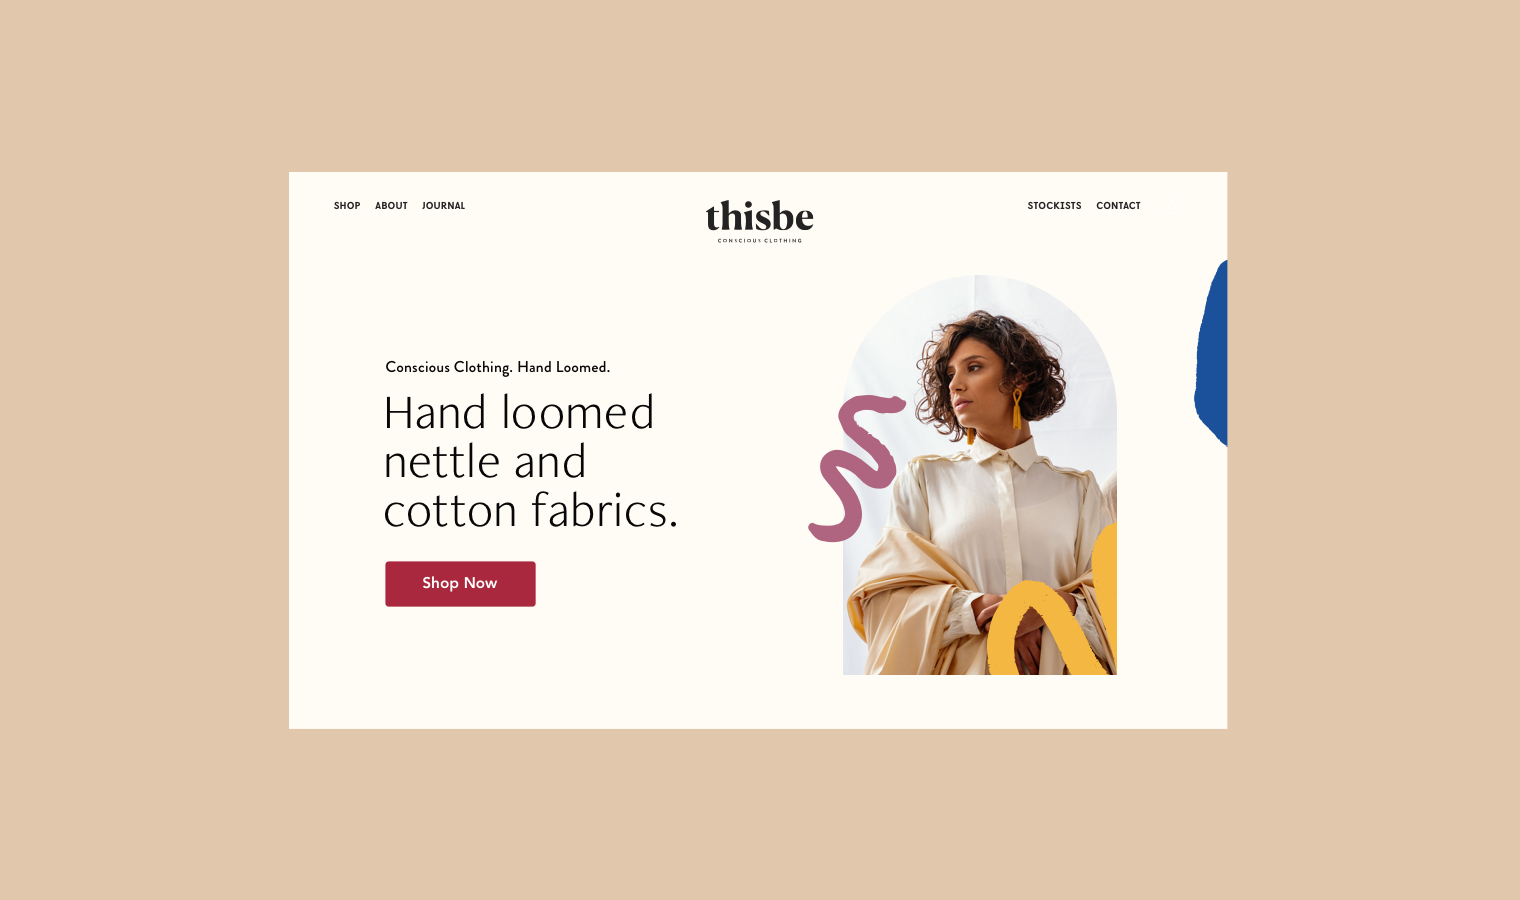 Website for Ethical Brand Thisbe Conscious Clothing Slow Fashion | Betsy & Francis | Ethical Design Agency